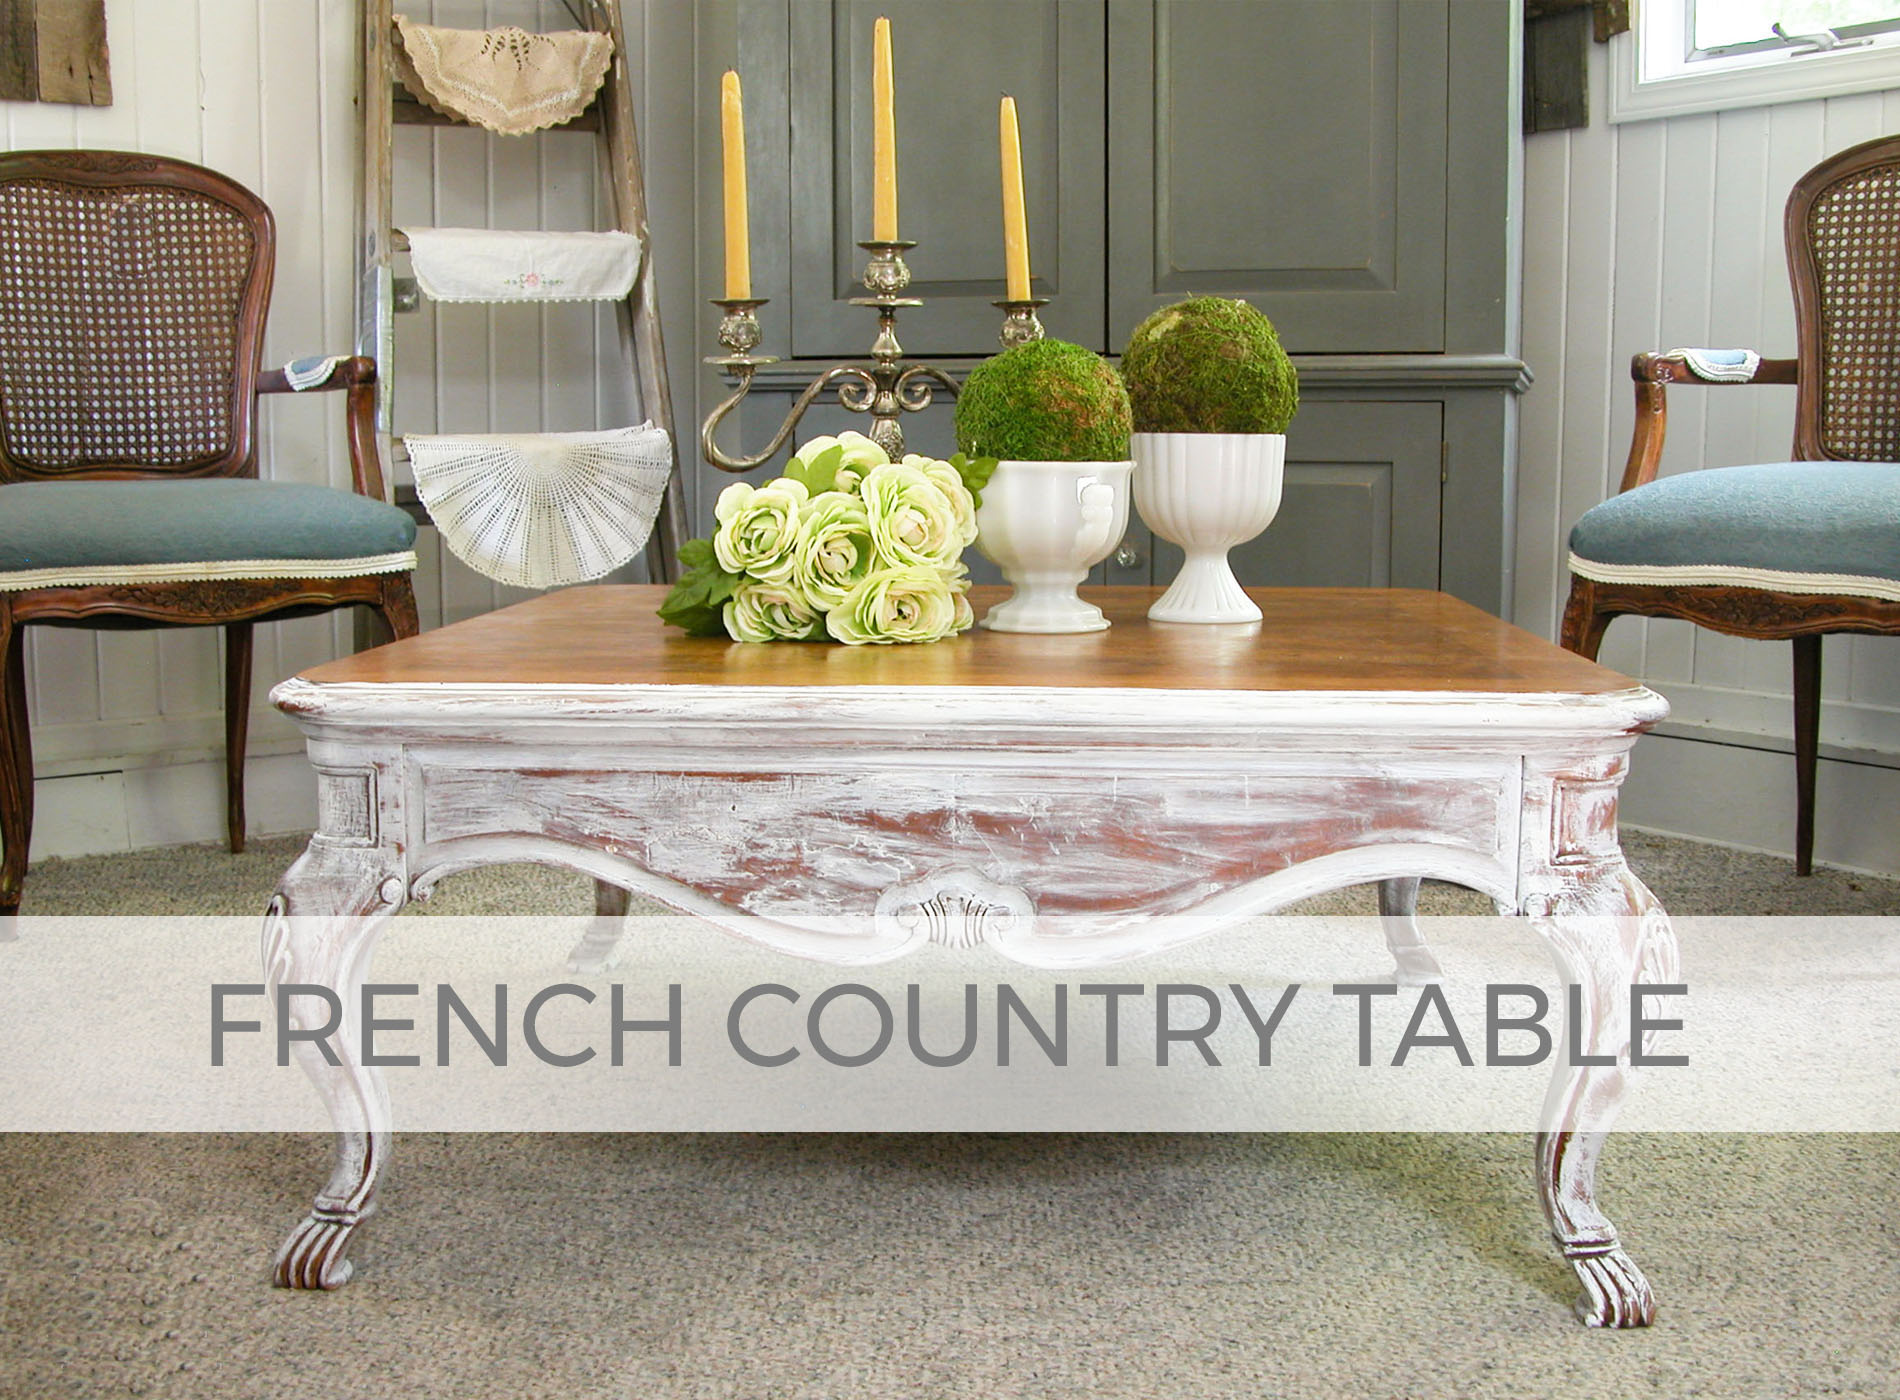 French Country Table by Larissa of Prodigal Pieces | prodigalpieces.com